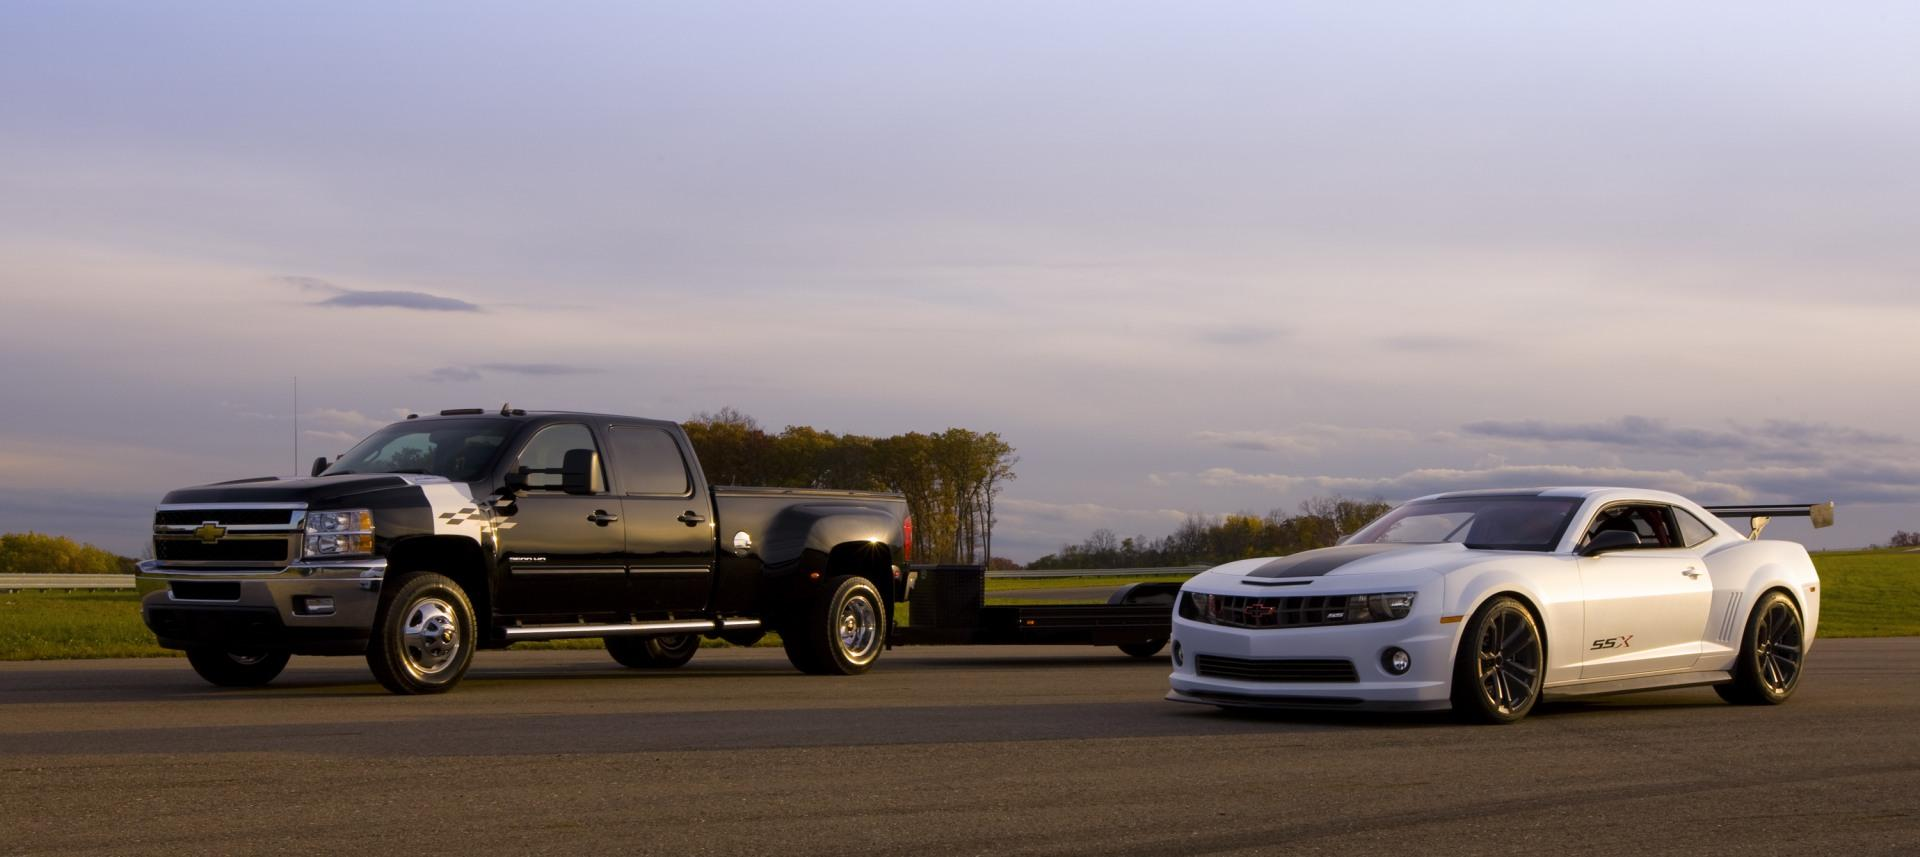 2011 Chevrolet Silverado 3500hd Race Car Hauler